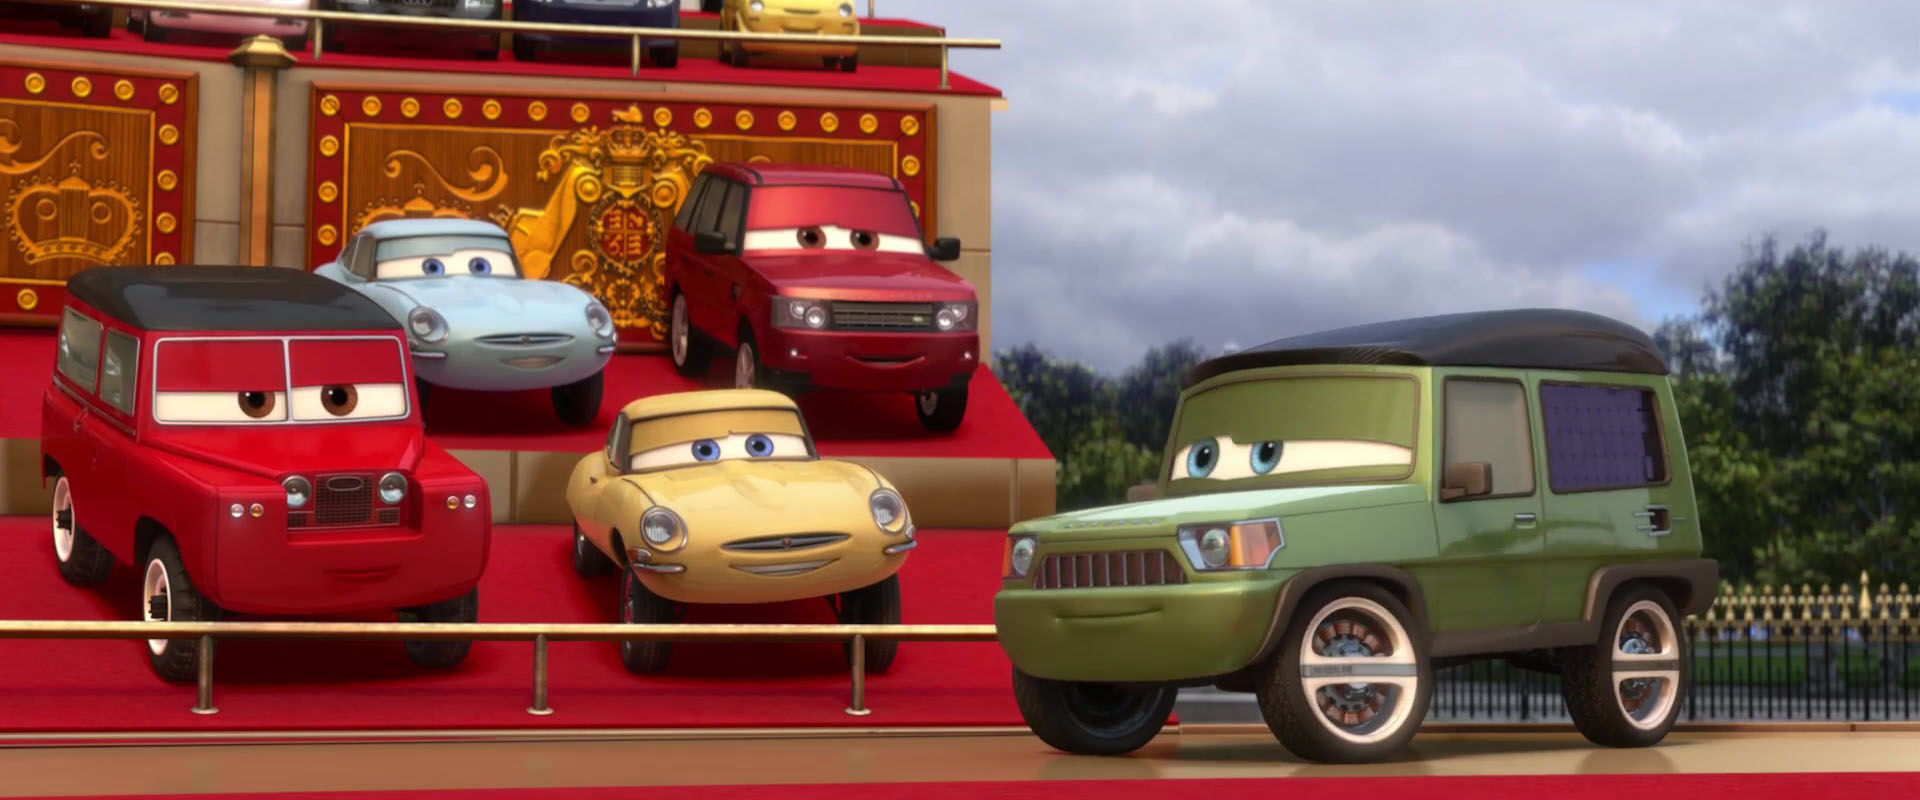 maurice wheelks personnage character pixar disney cars 2